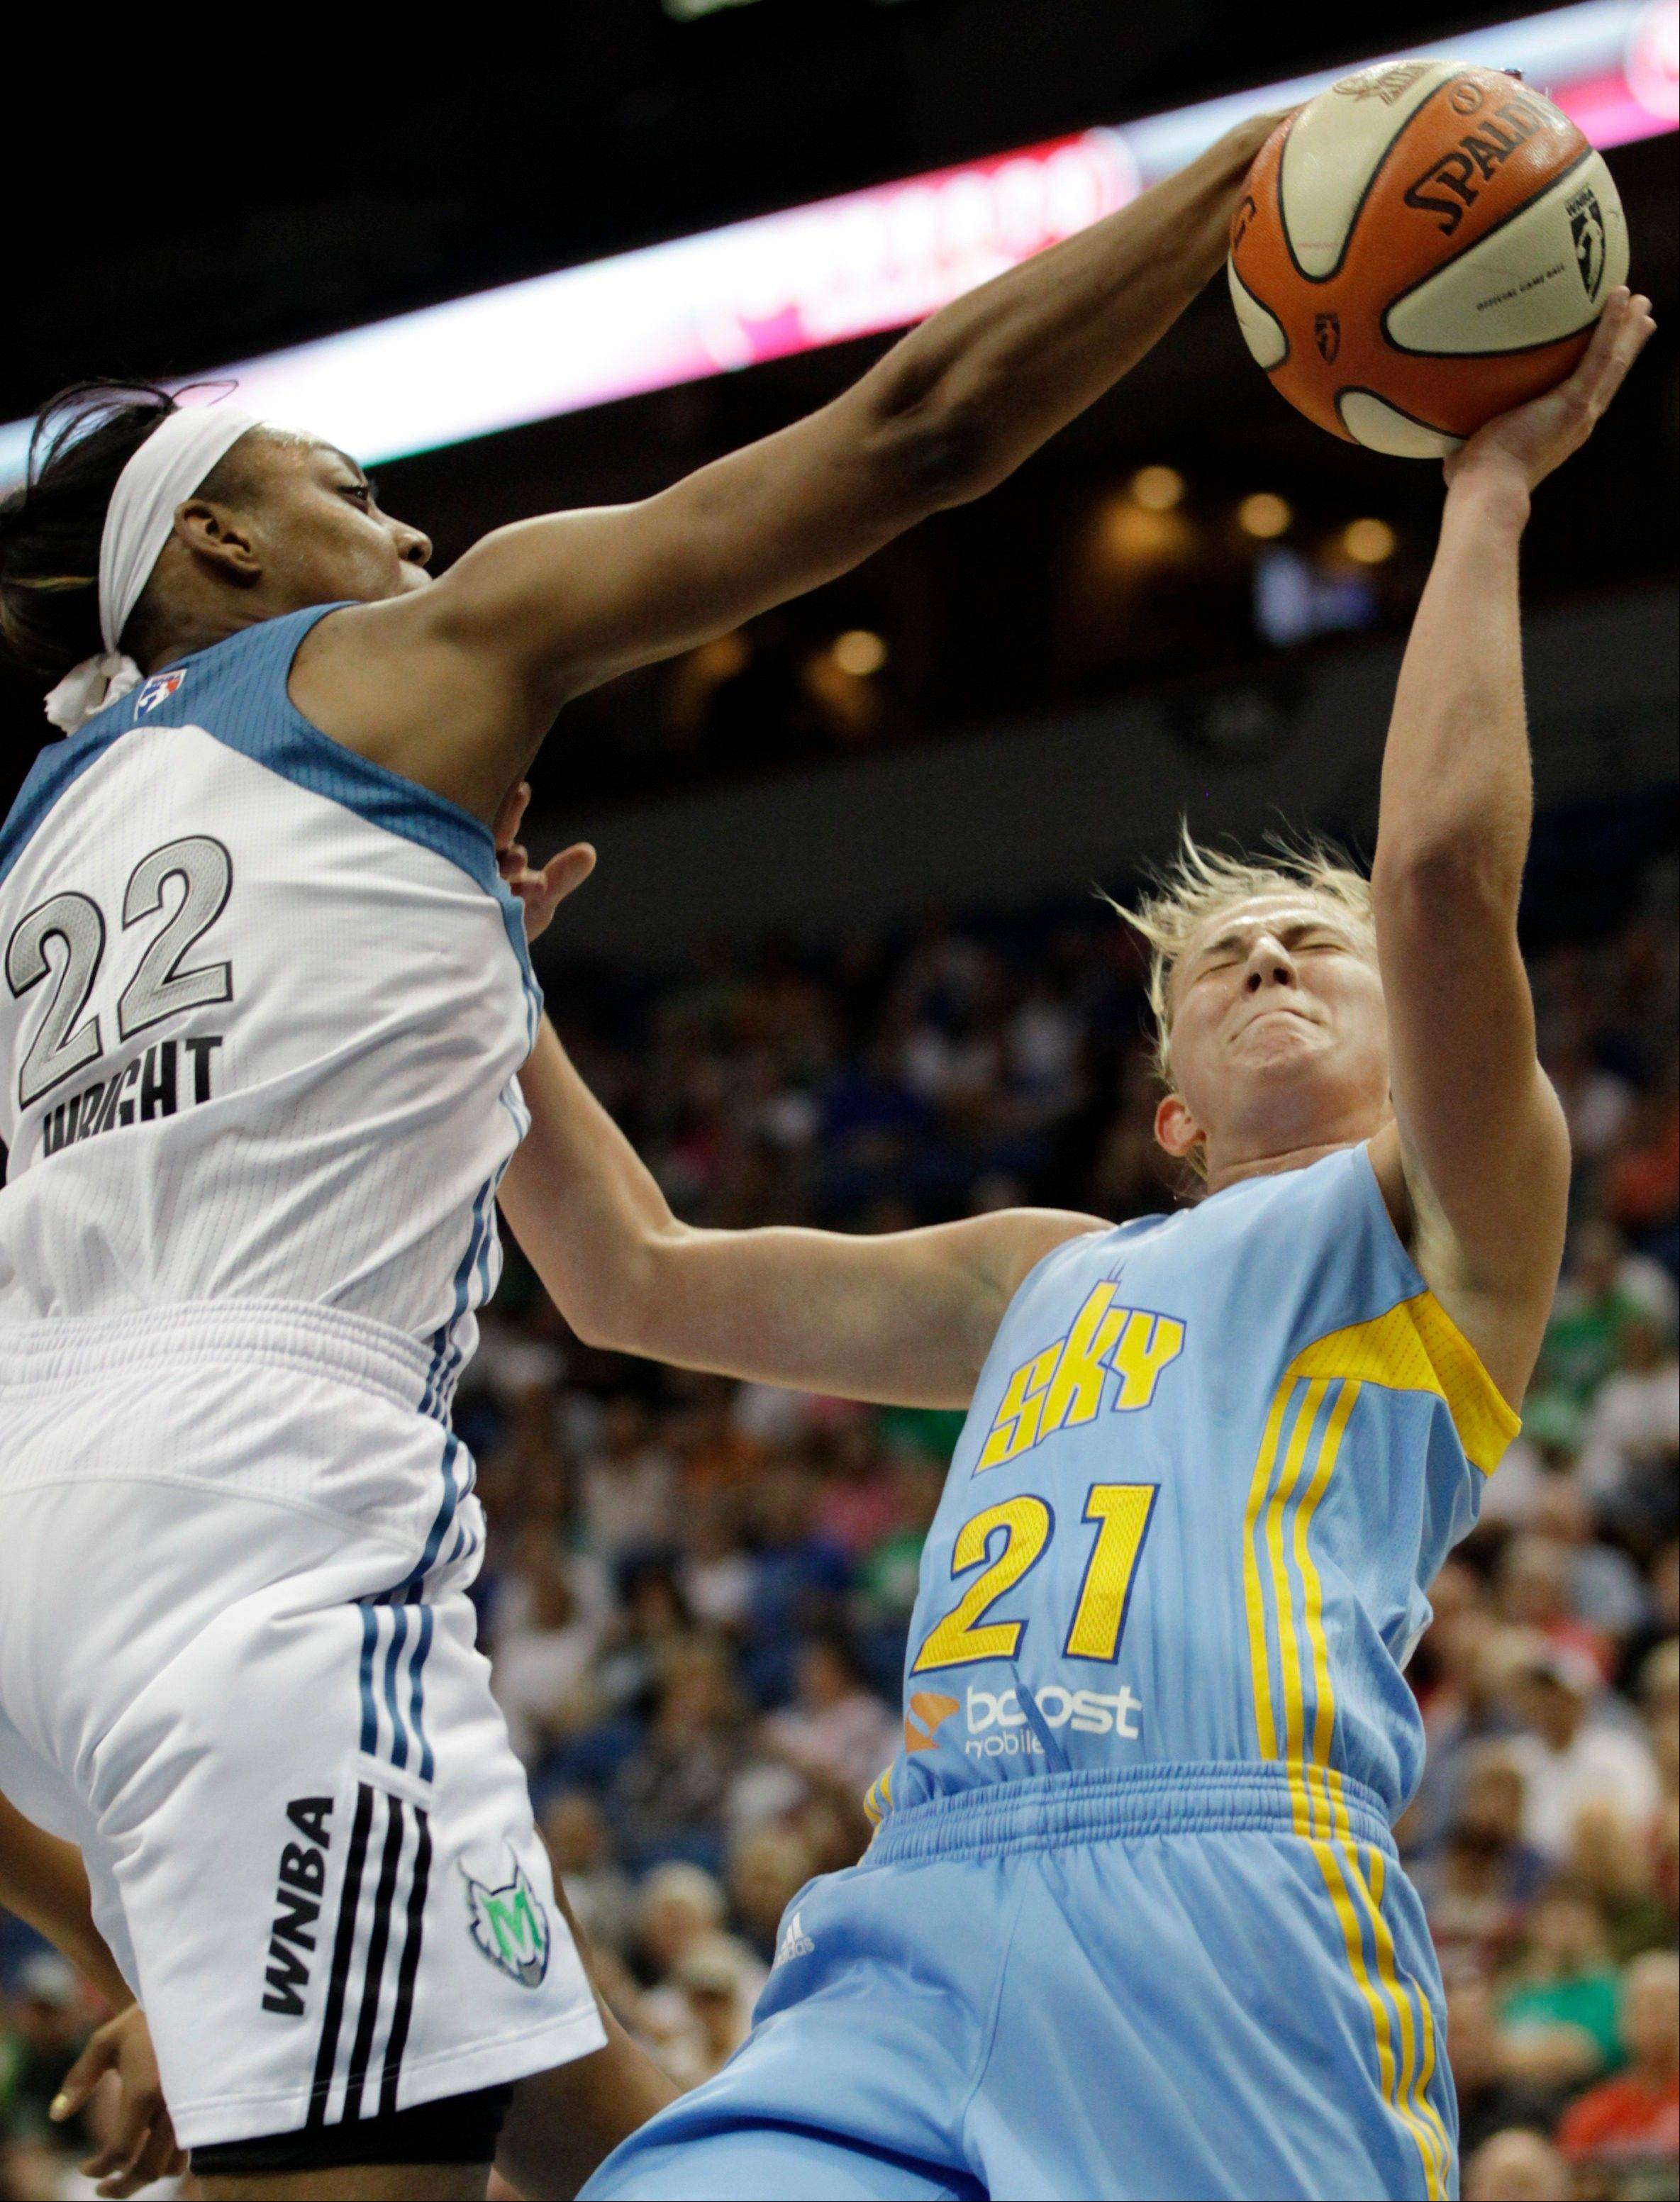 Minnesota Lynx guard Monica Wright drives hard against Sky guard Courtney Vandersloot. The Sky dropped the game against the Lynx, 78-69.